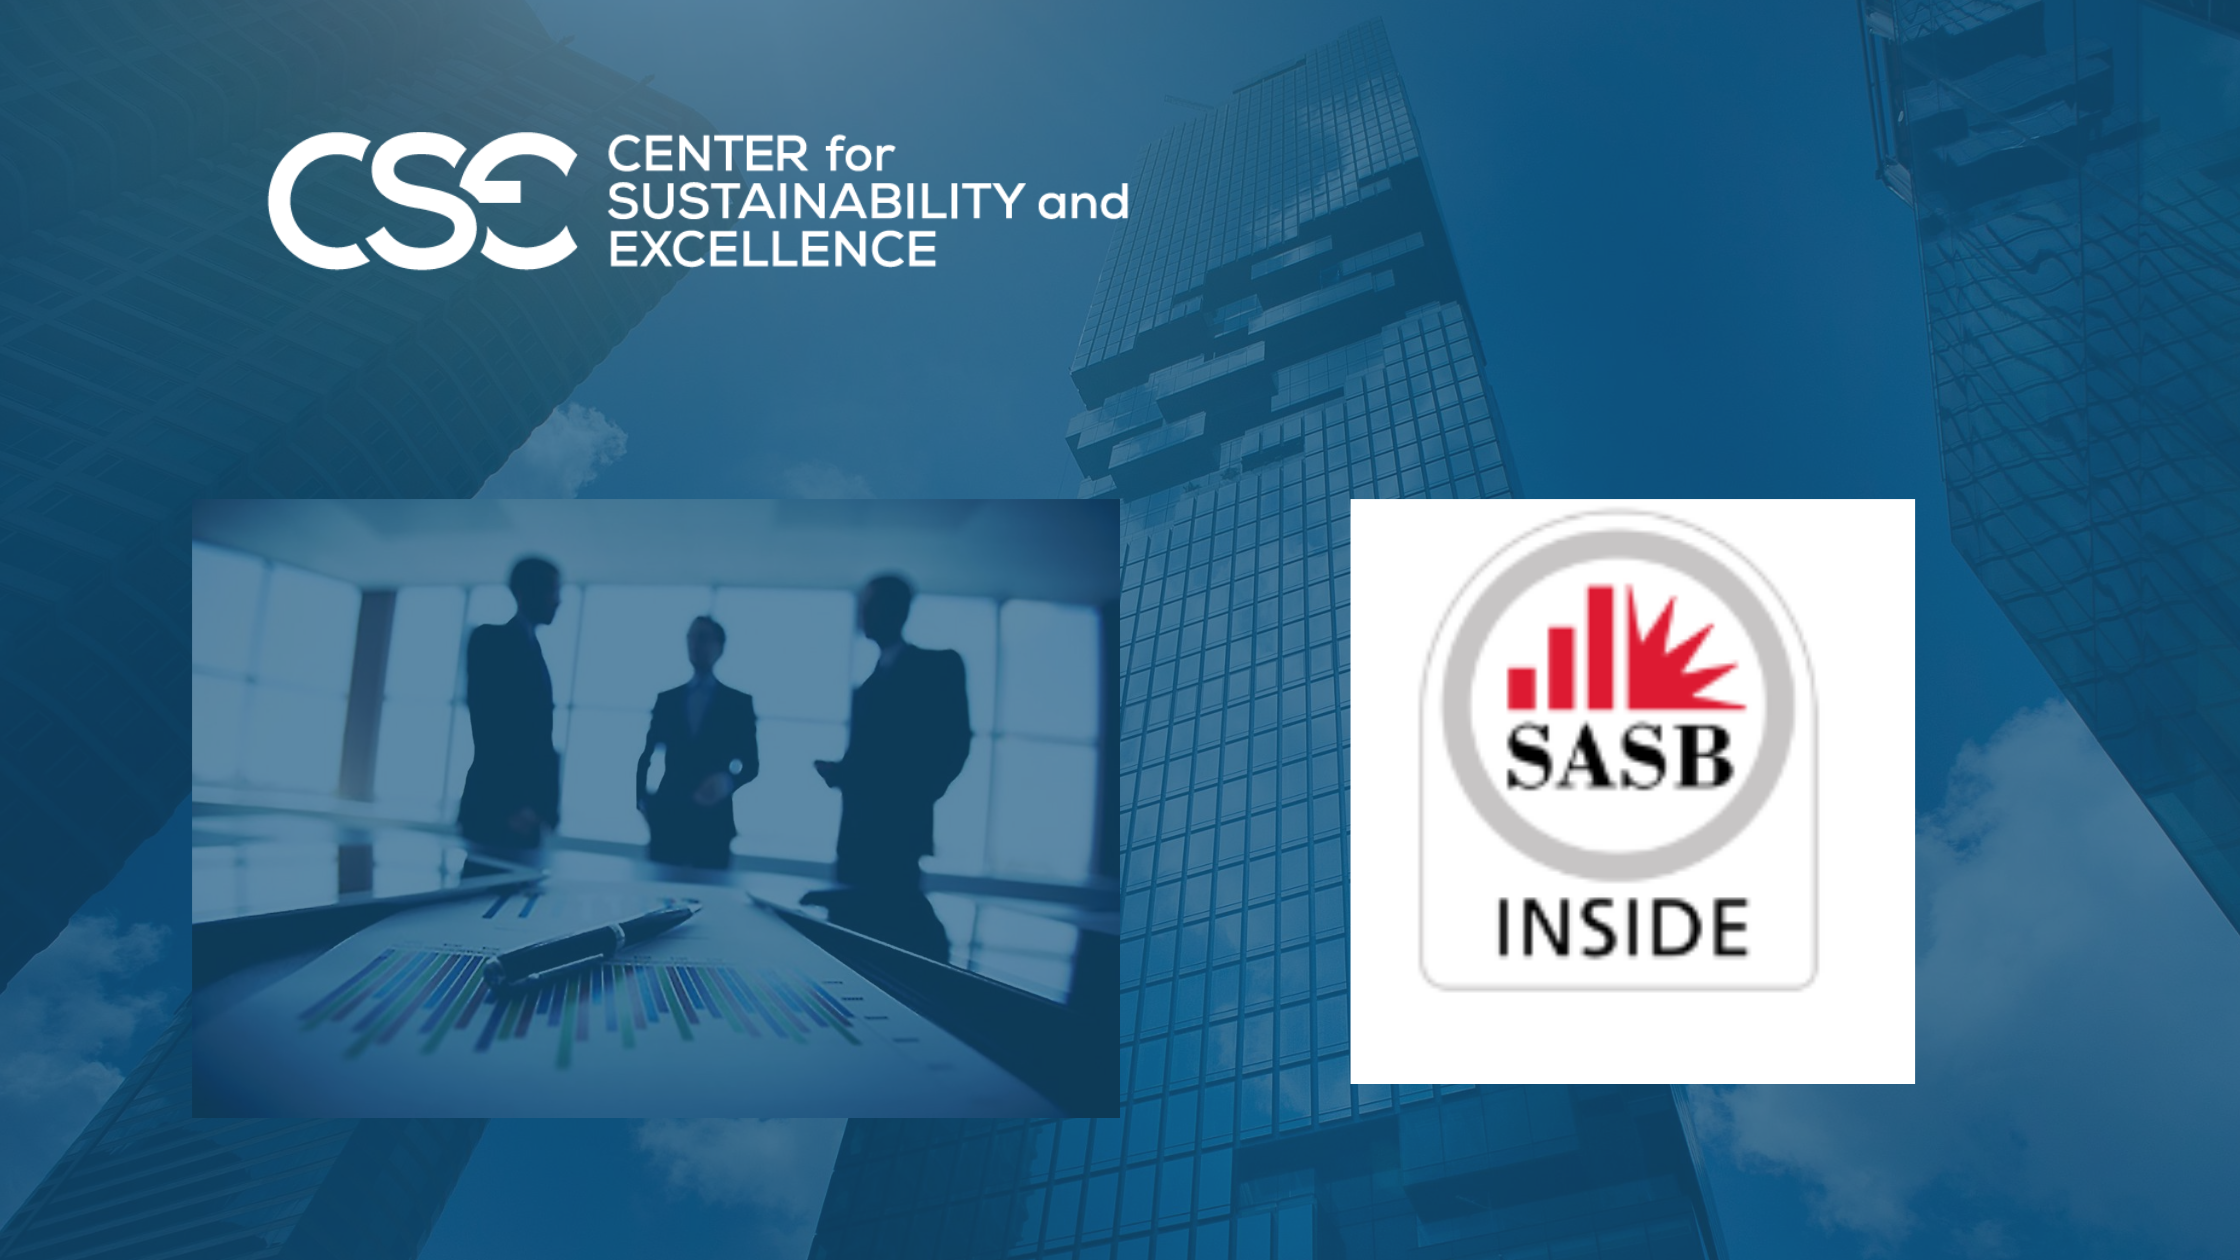 Publicly listed companies take note: SASB Standards Important for Sustainability Reporting